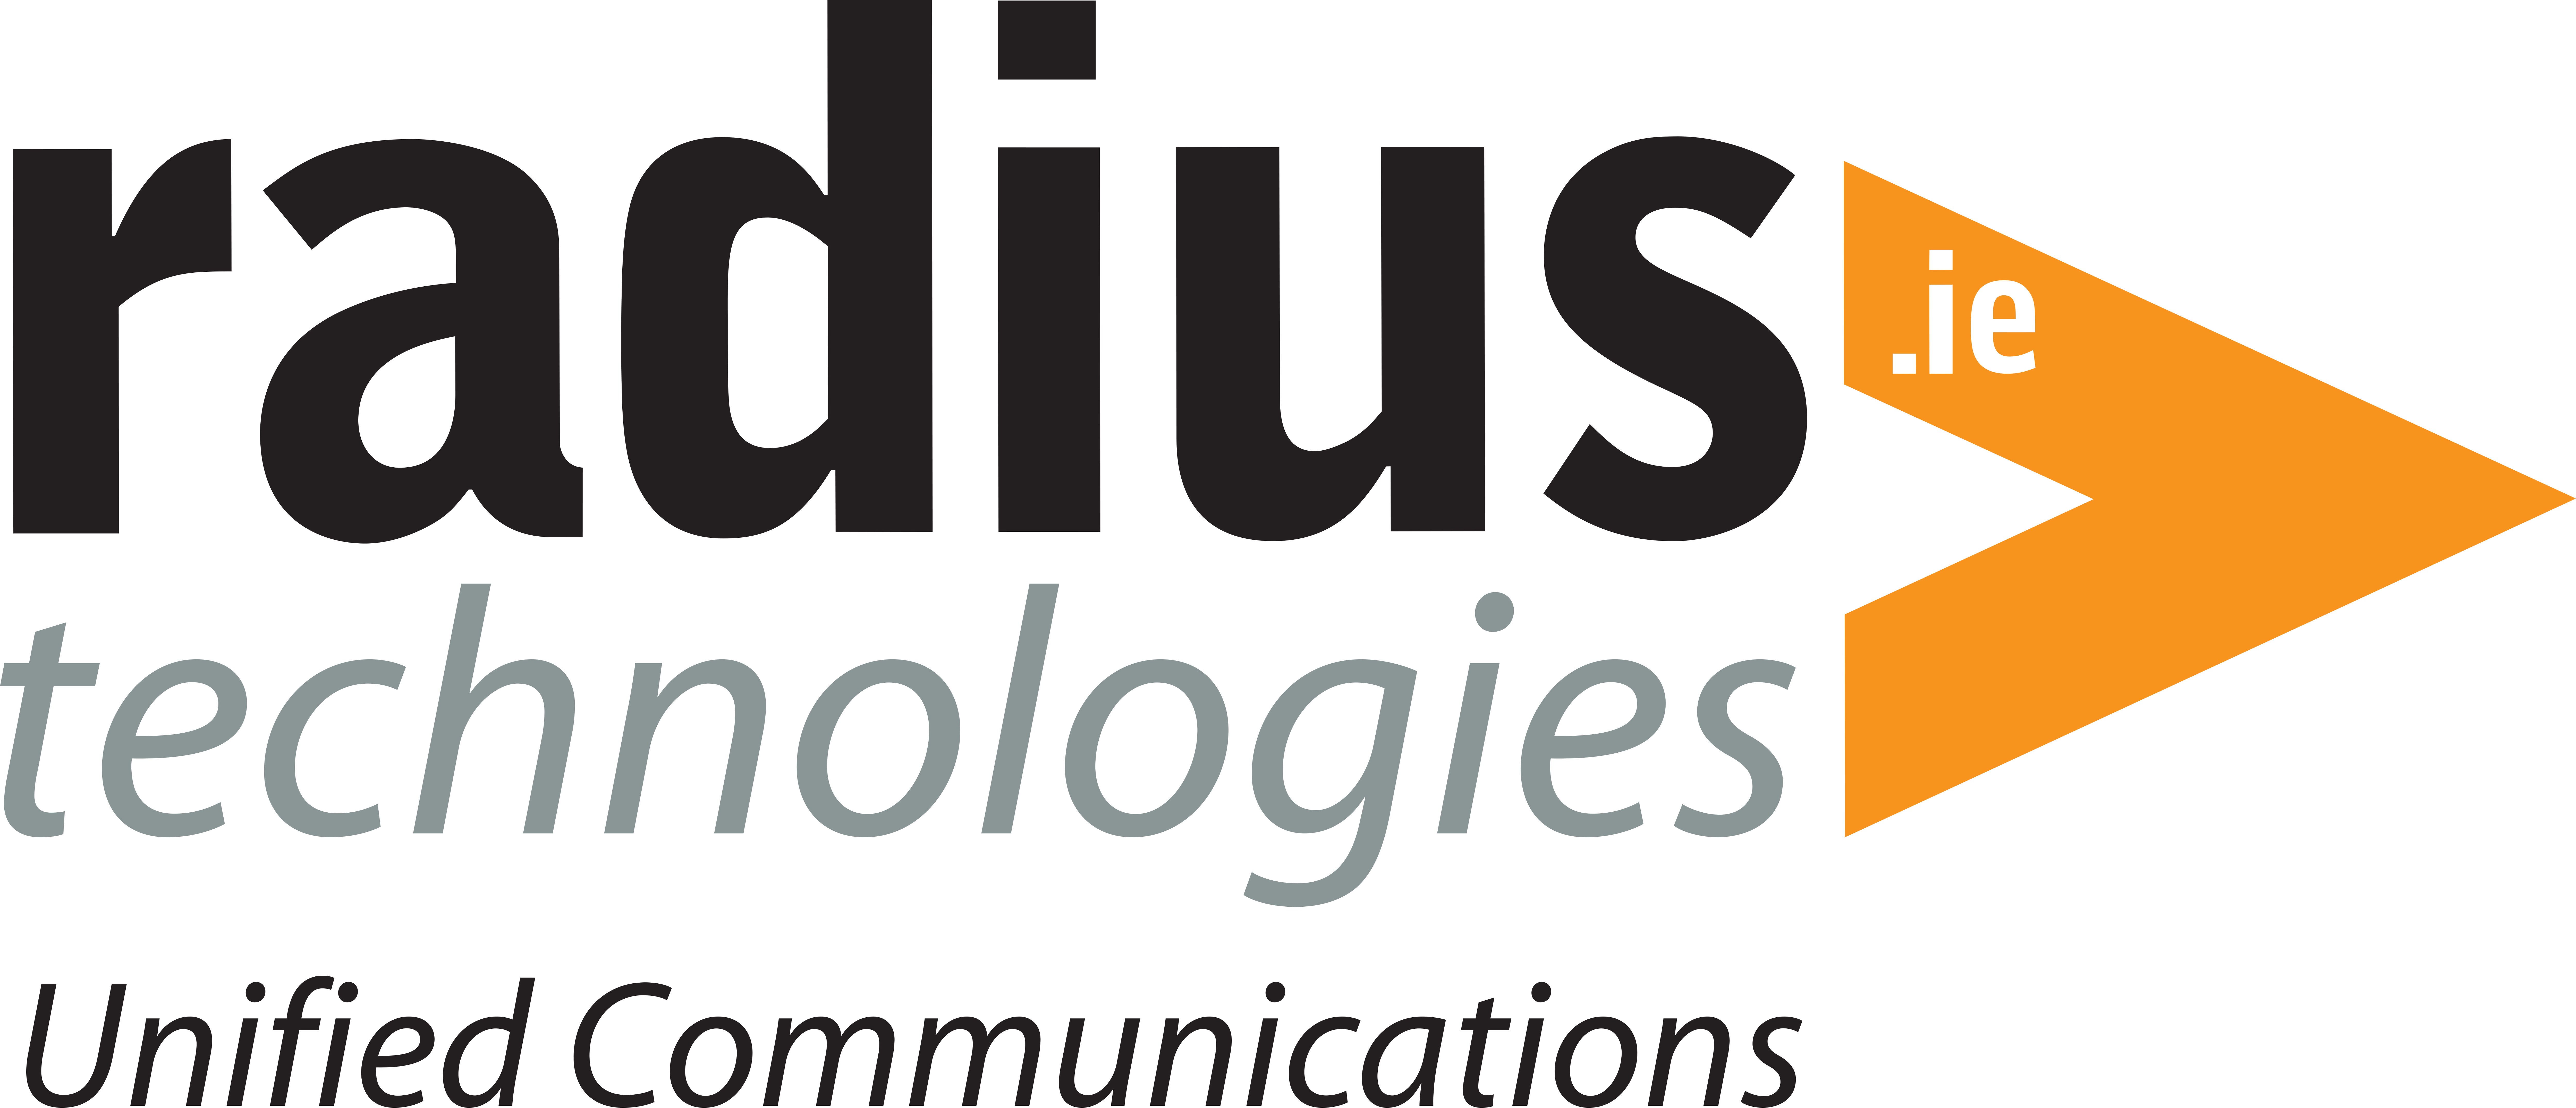 Radius-Technologies-Highest-Res